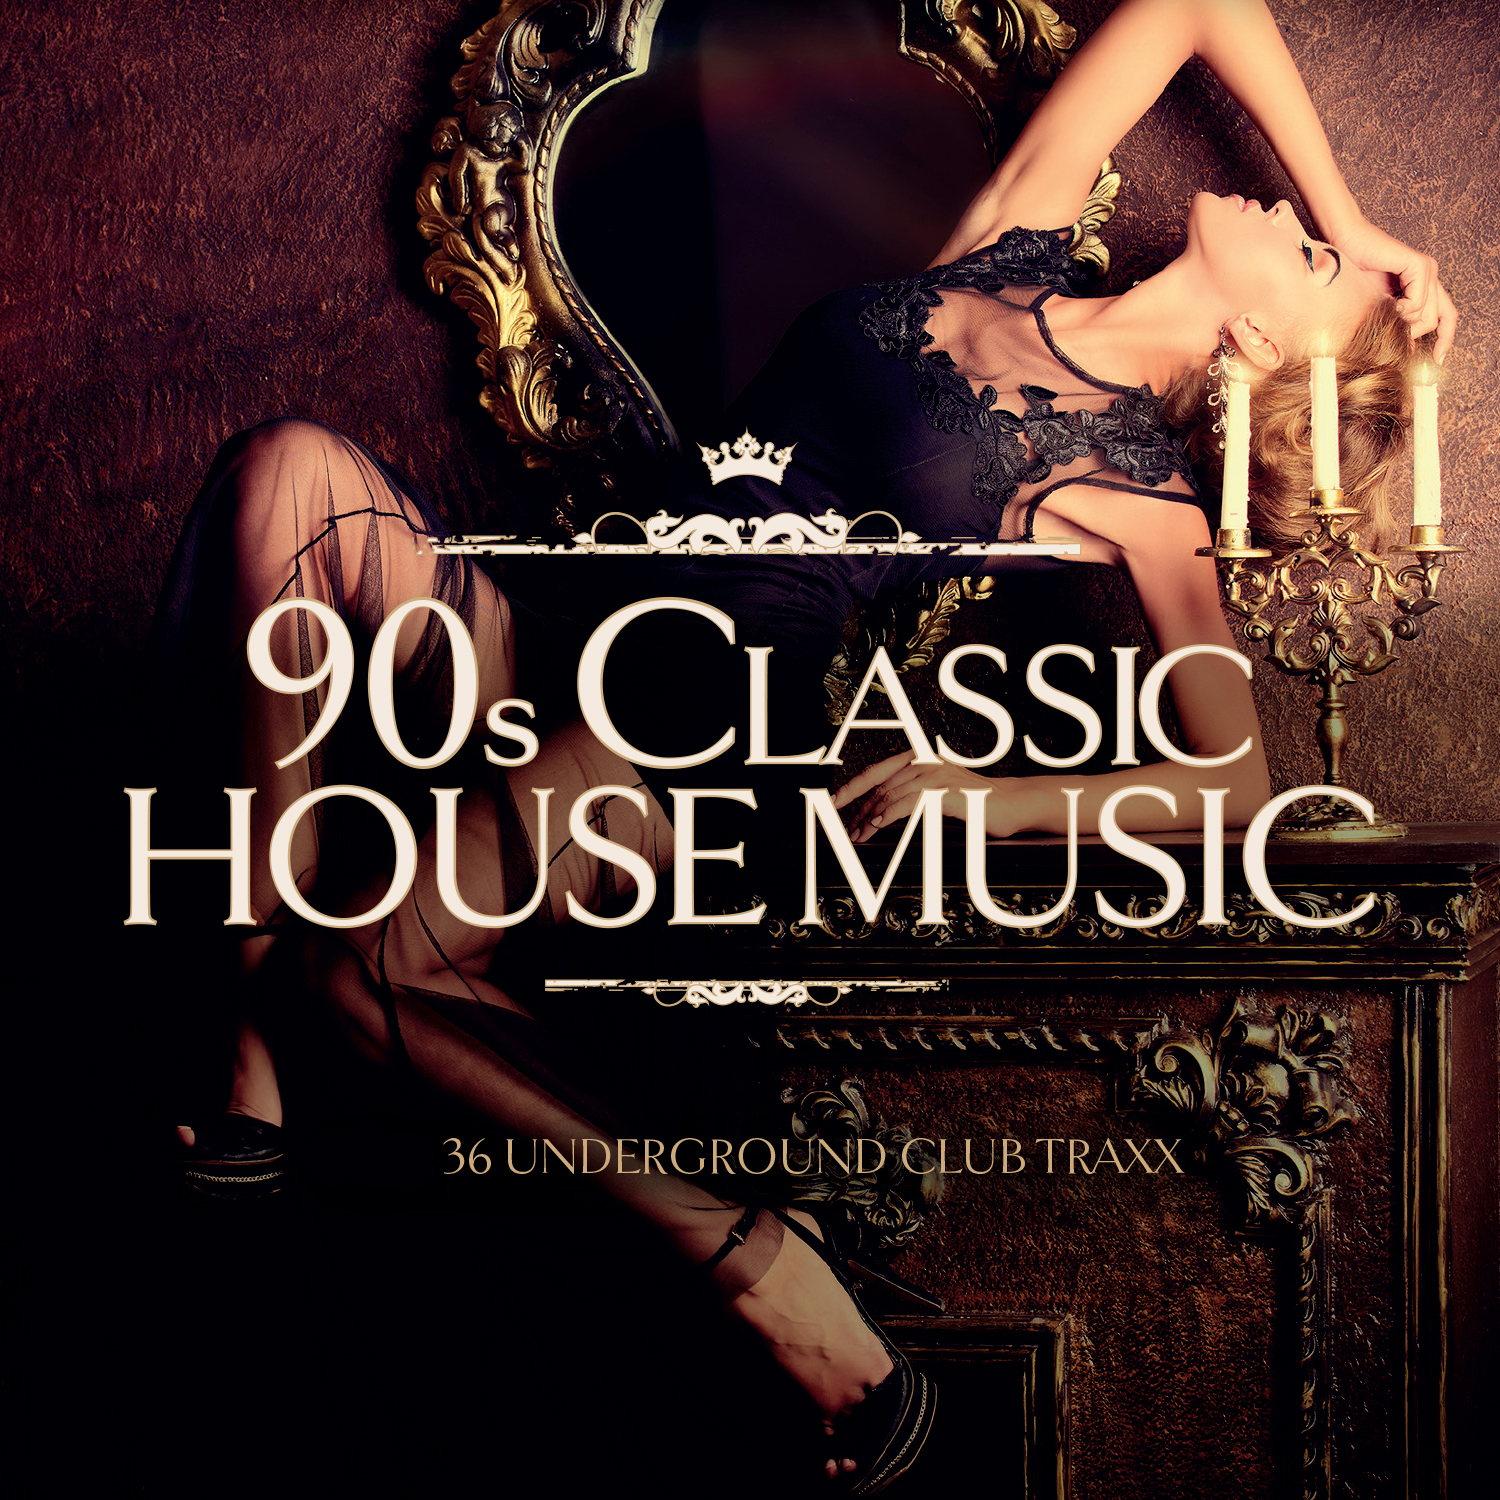 Il triplo cd di 90s classic house music finalmente for Classic house from the 90s